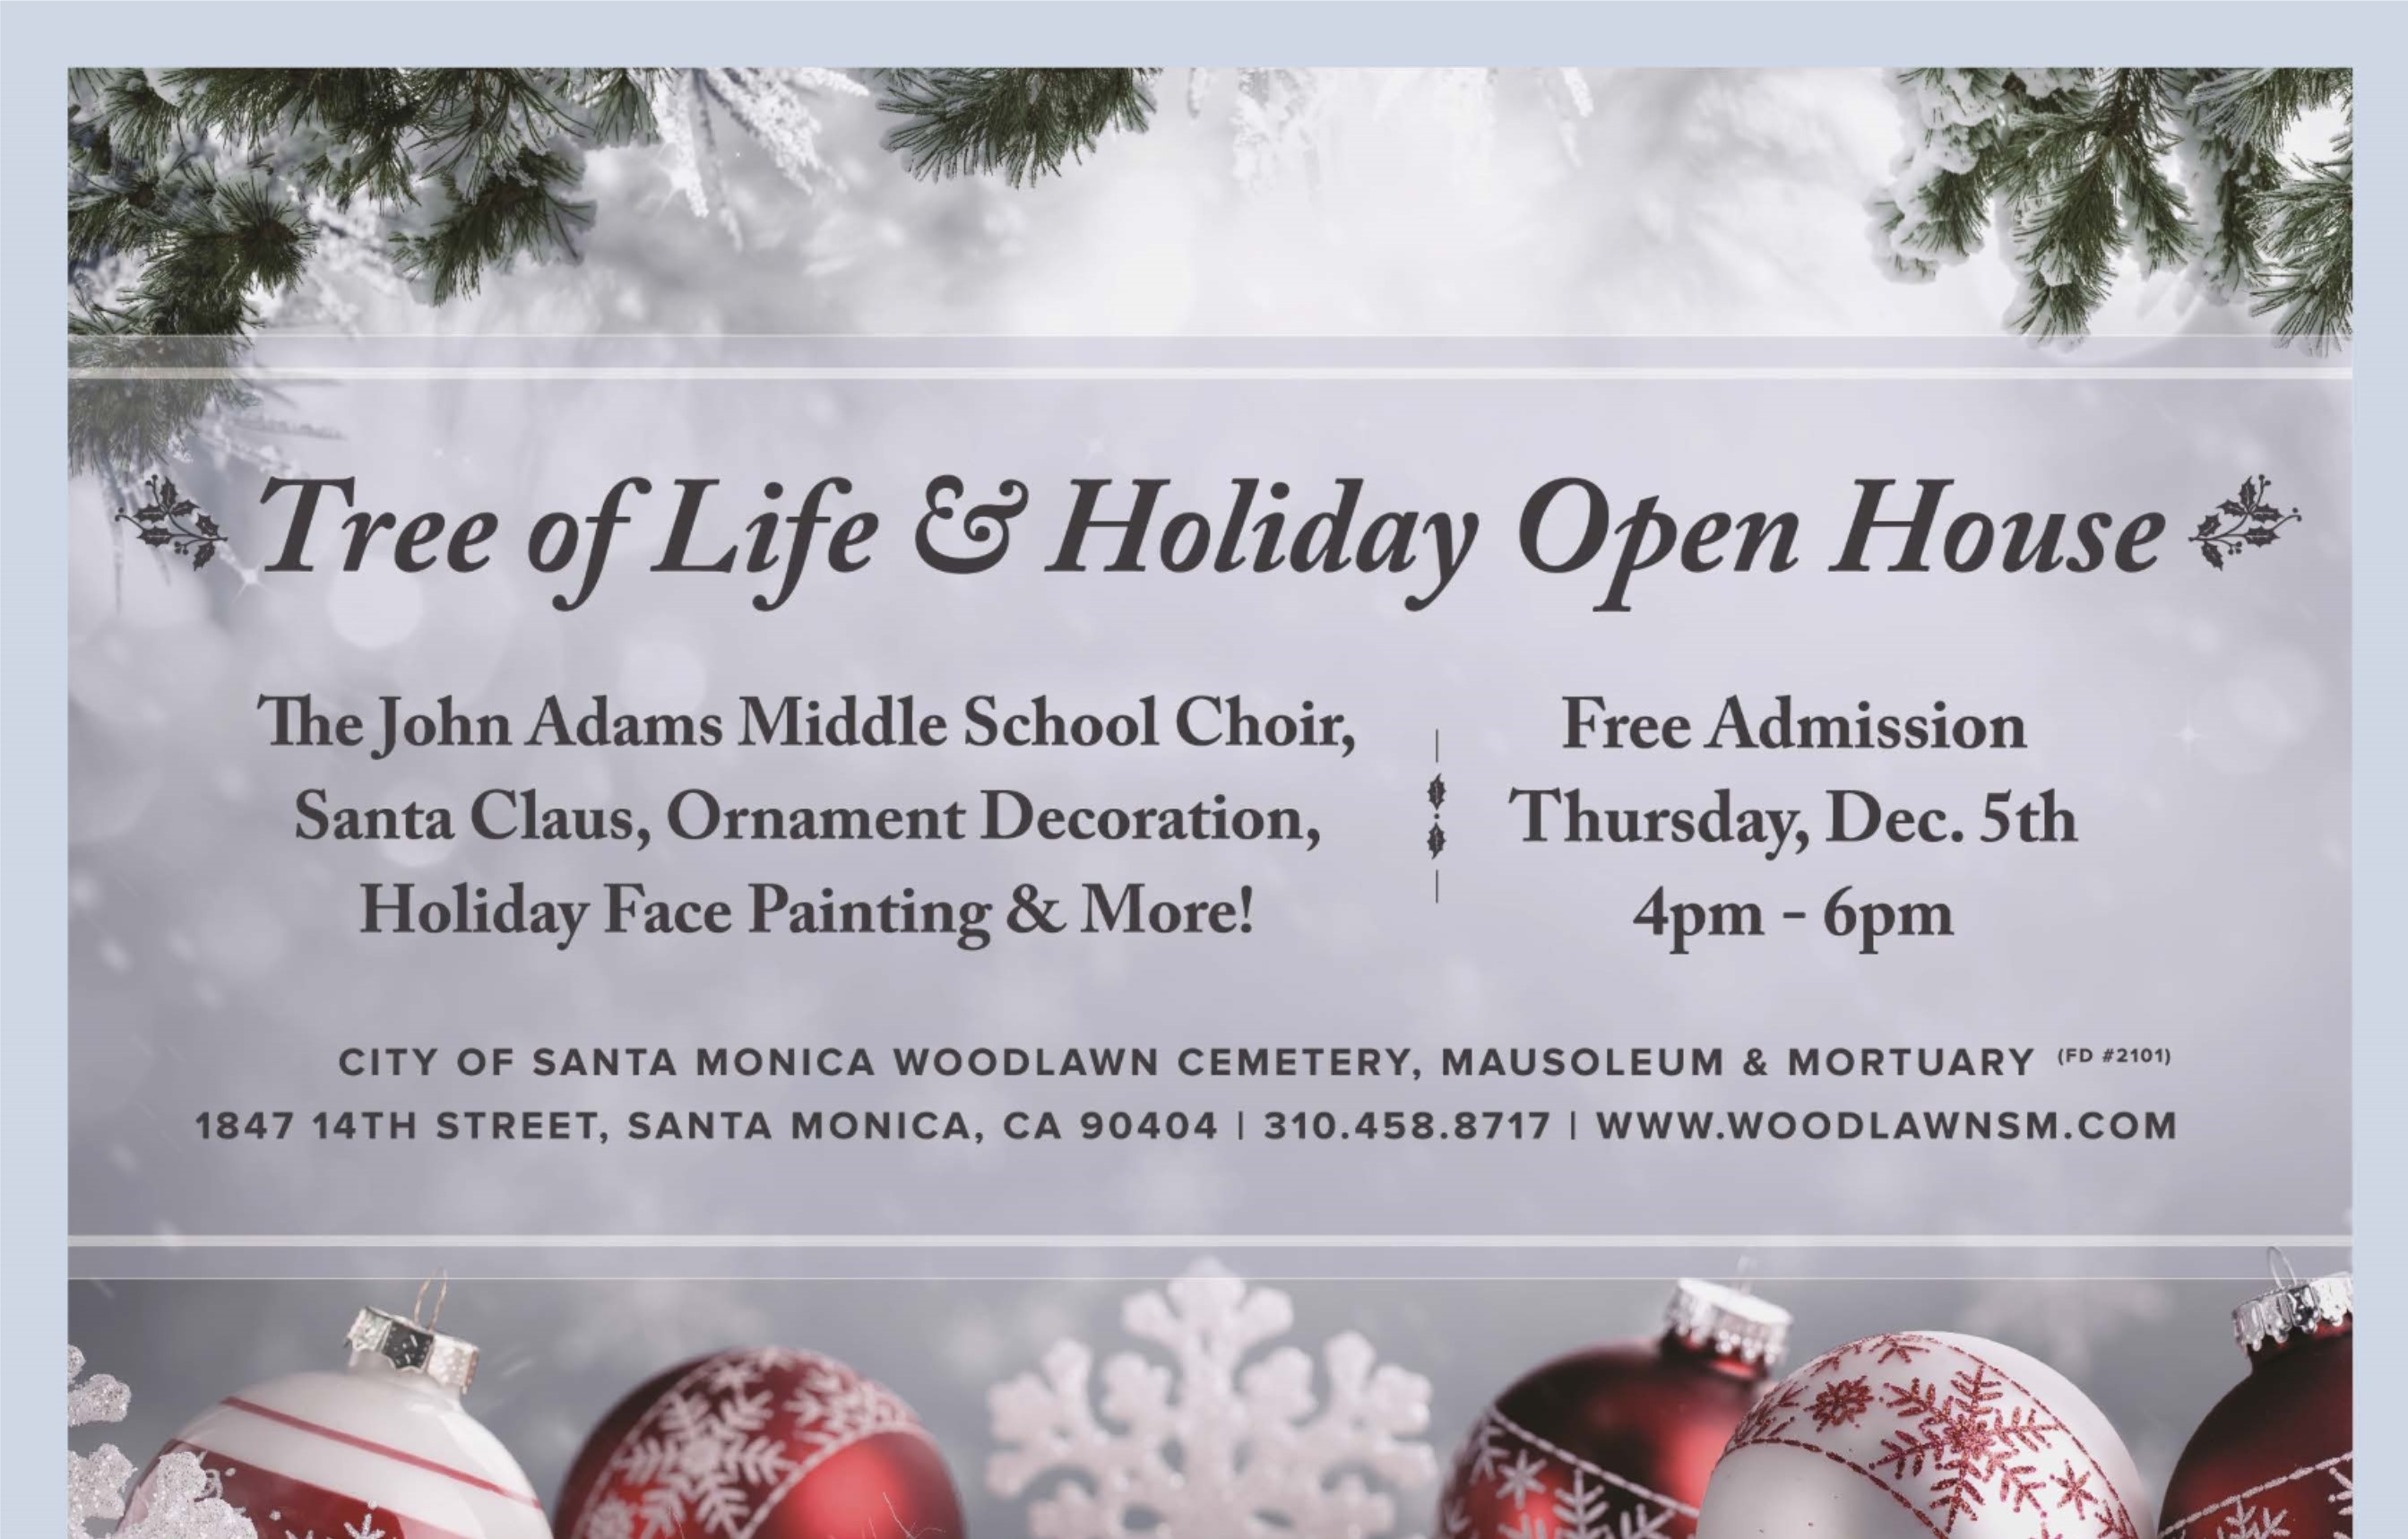 TREE OF LIFE & HOLIDAY OPEN HOUSE 2019